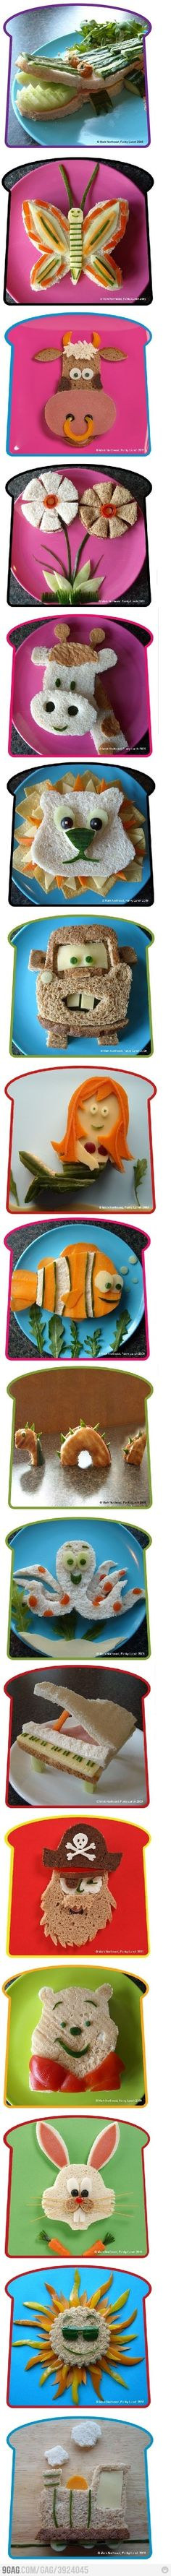 Sandwiches for kids